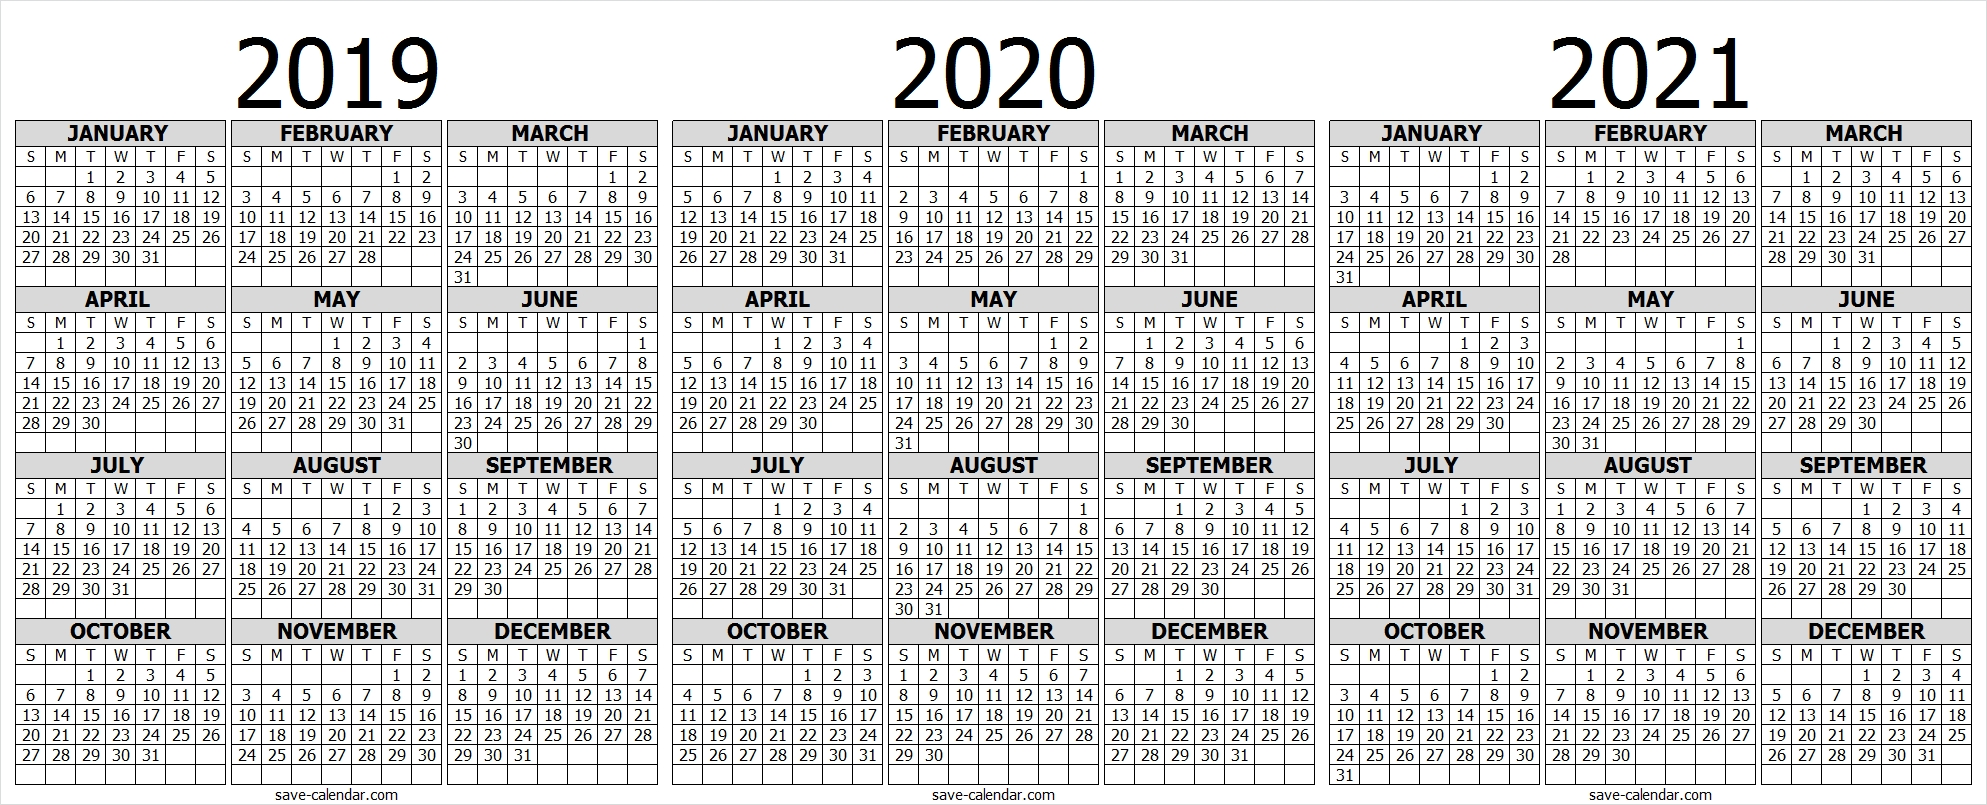 2019 2020 2021 Calendar To Print | Print Calendar, 2021 with regard to 2019 To 2021 Printable Calendar